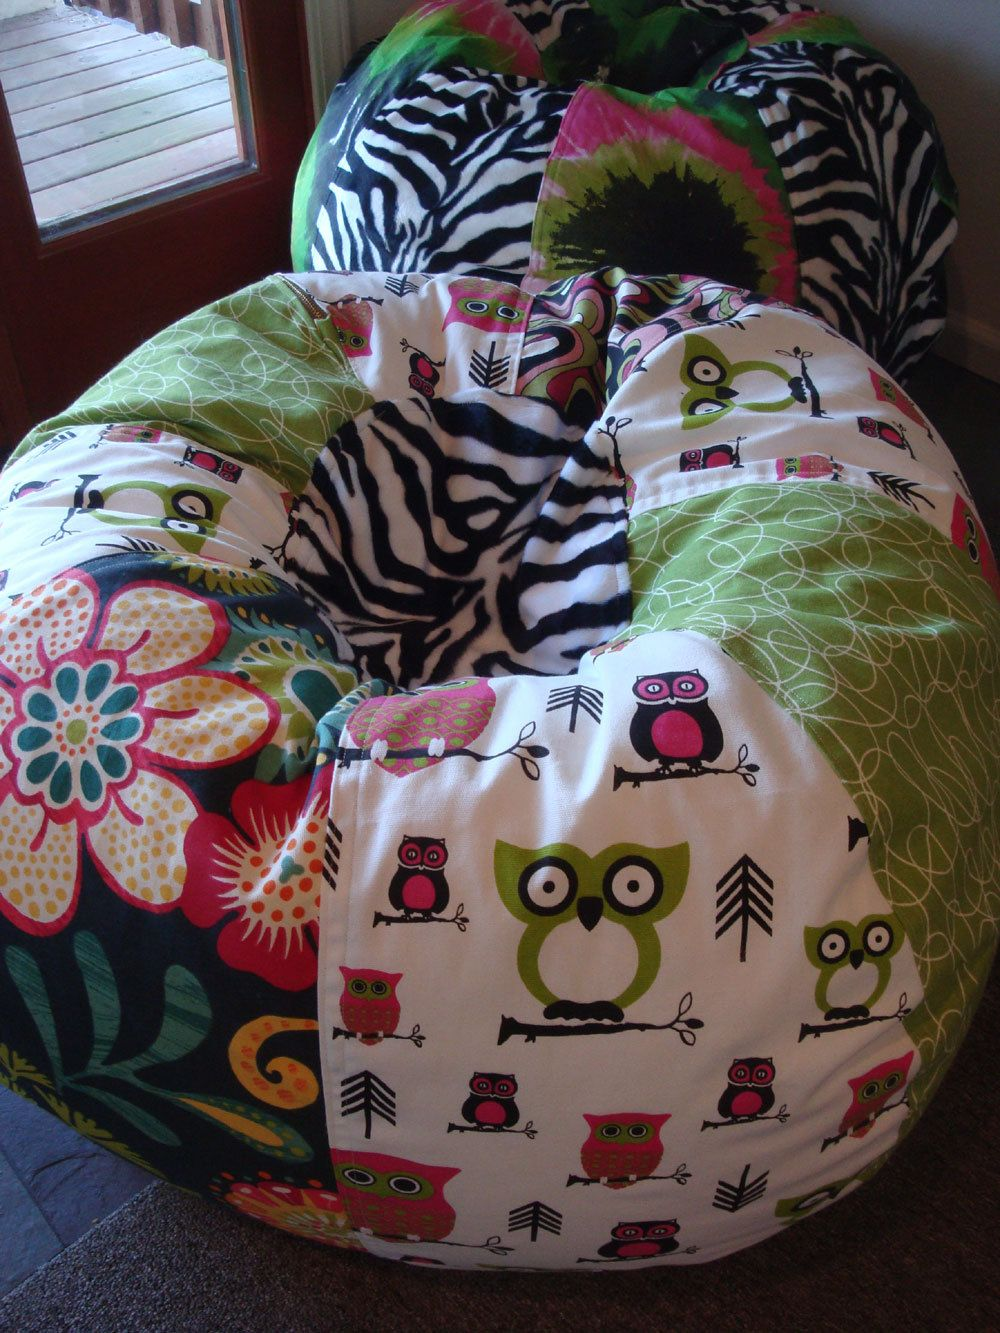 Make A Bean Bag Out Of Material From Old Clothing Sheets Whatever